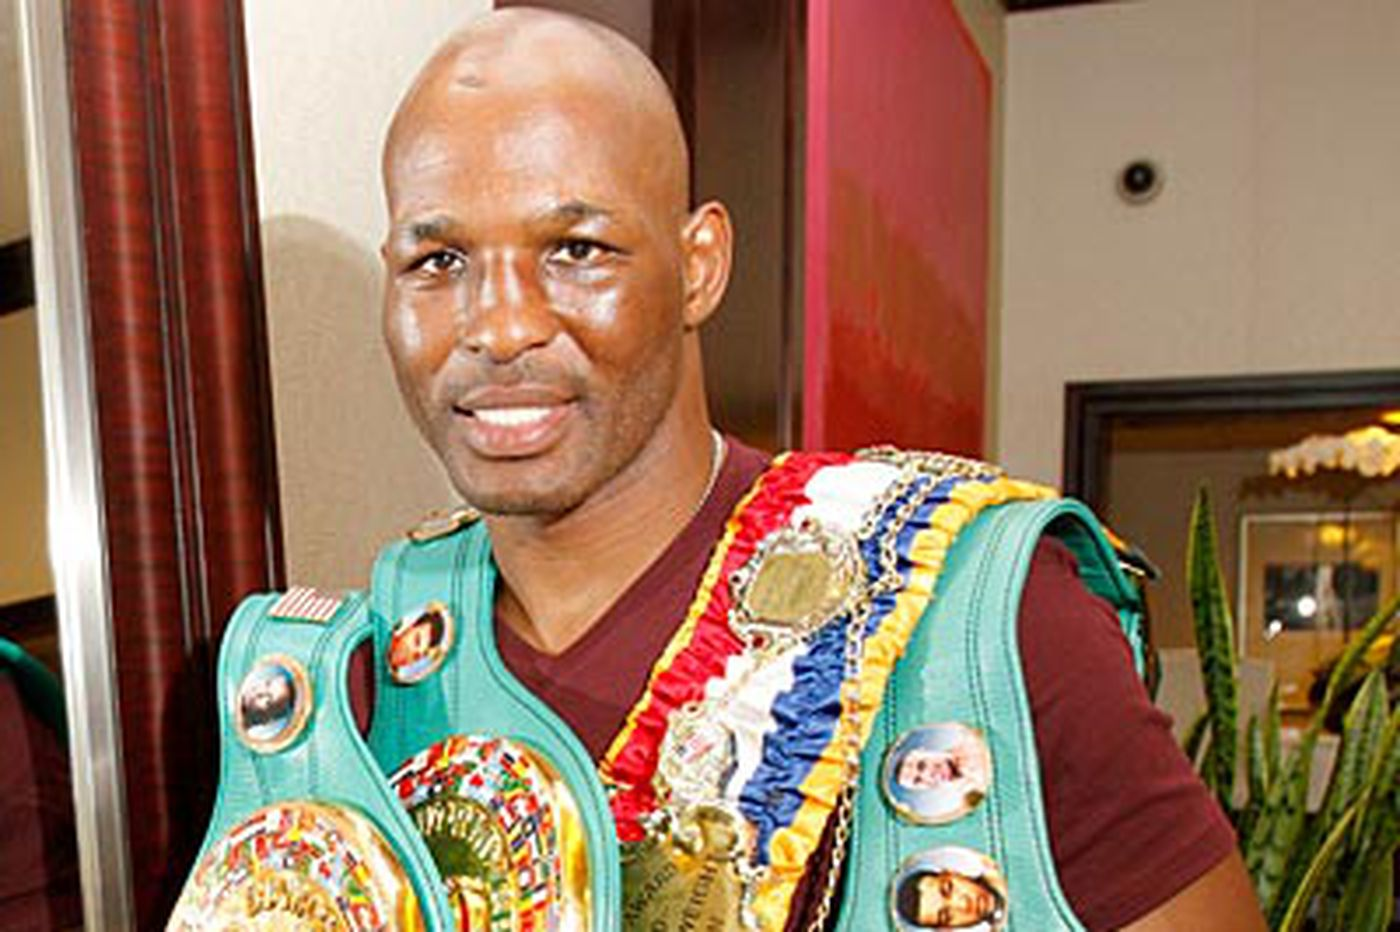 Champ again at 46, Bernard Hopkins says he got into foe's head